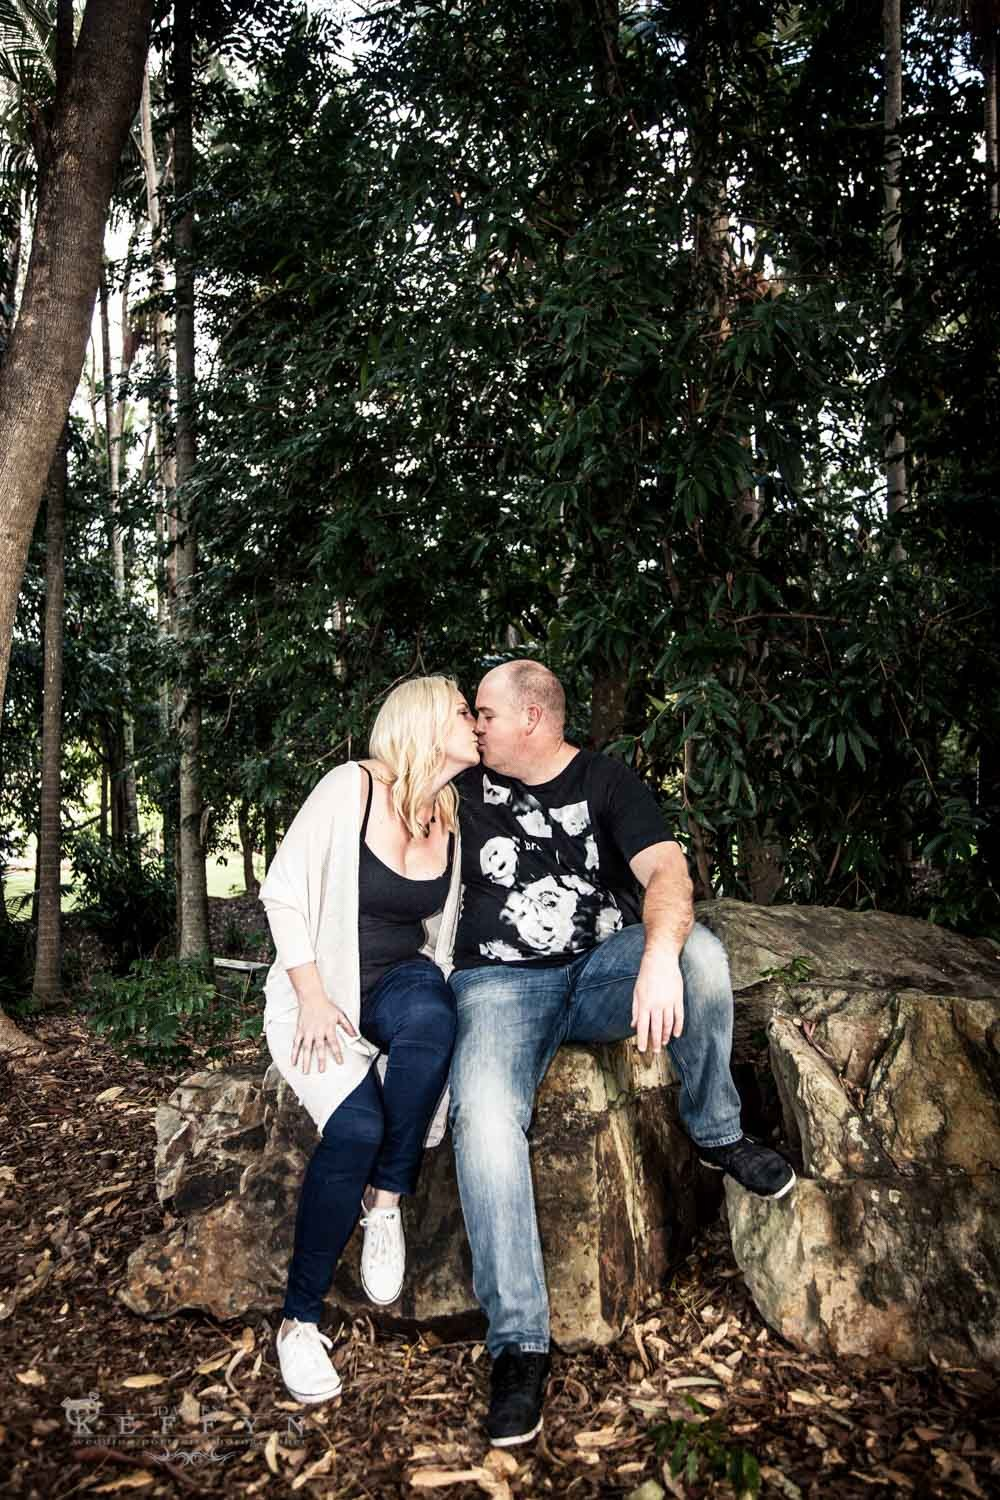 Melanie Brendon Engagement Photography Centenary Lakes, Australia, Beach Wedding, bush wedding, Caboolture, Centenary Lakes, Family Portraits, garden wedding, Queensland, Testimonials, Wedding